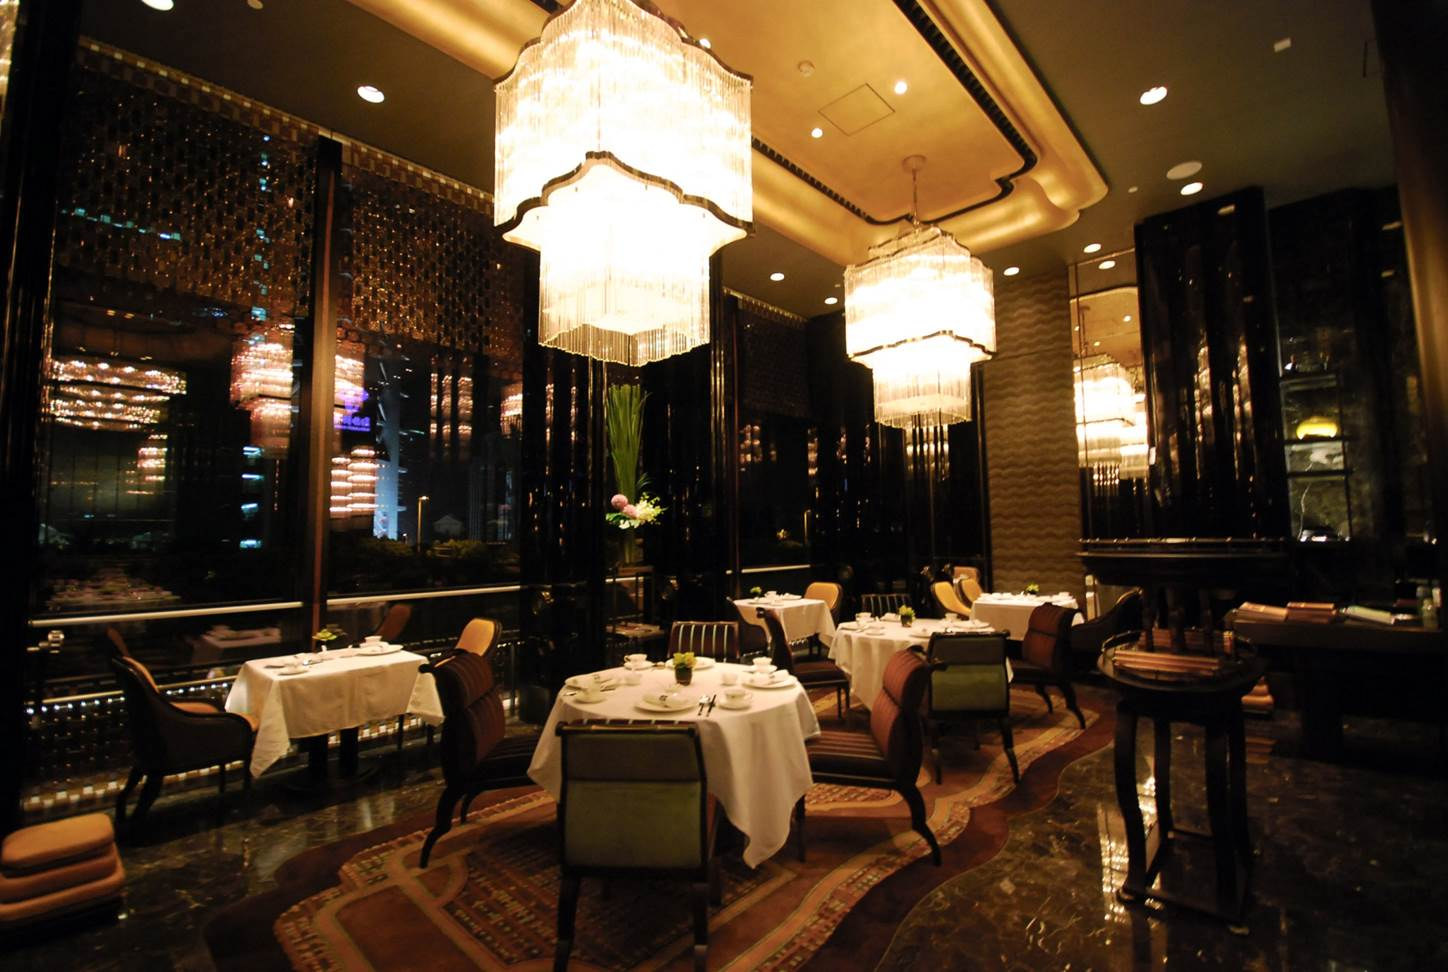 Chinese_restaurant_Shàng-Xí,_Four_Seasons_Hotel,_Pudong,_Shanghai,_China__2